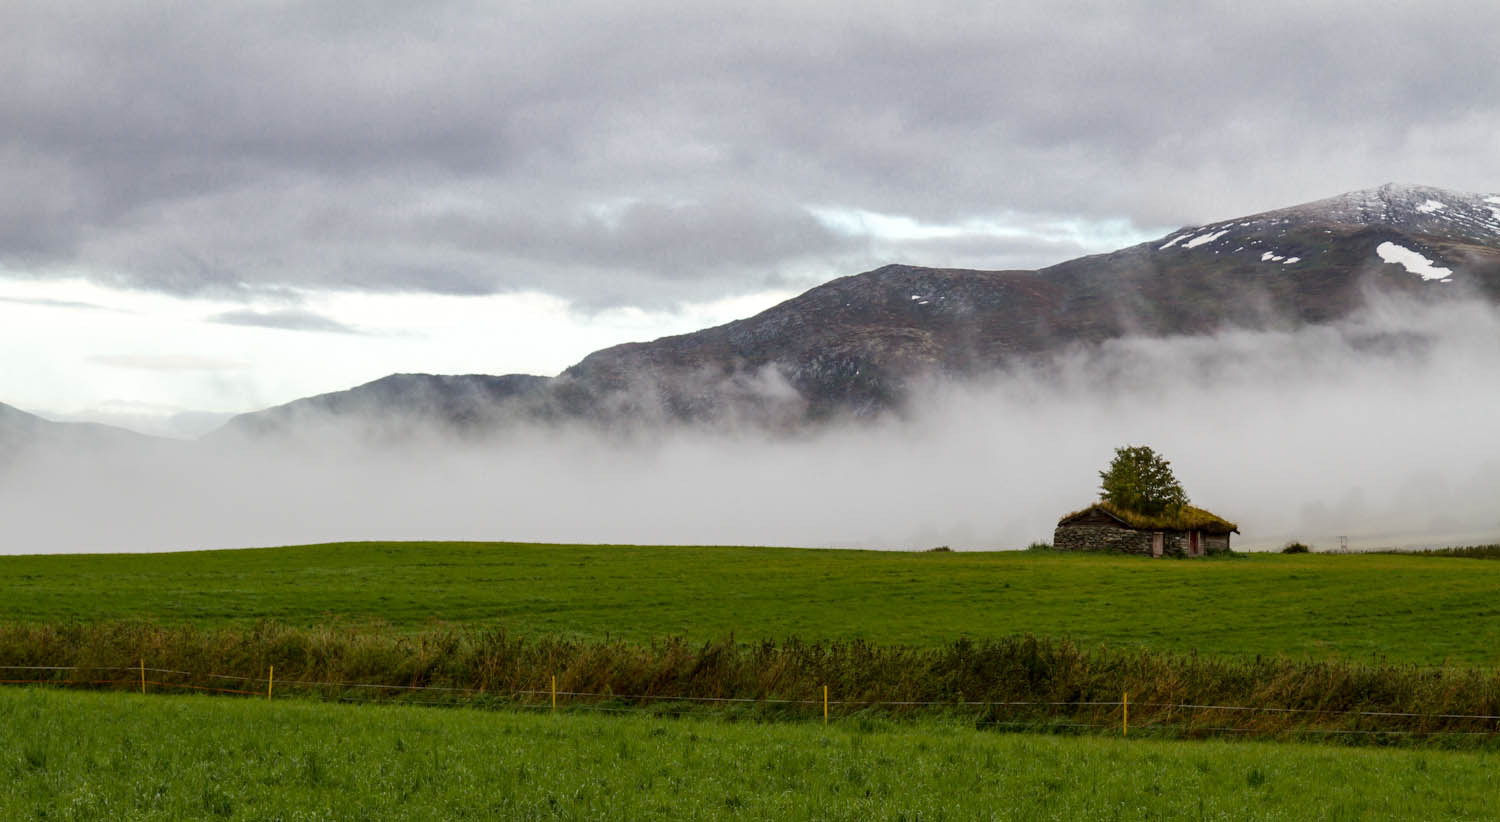 Photograph Fog and tree by Jens-Chr. Strandos on 500px